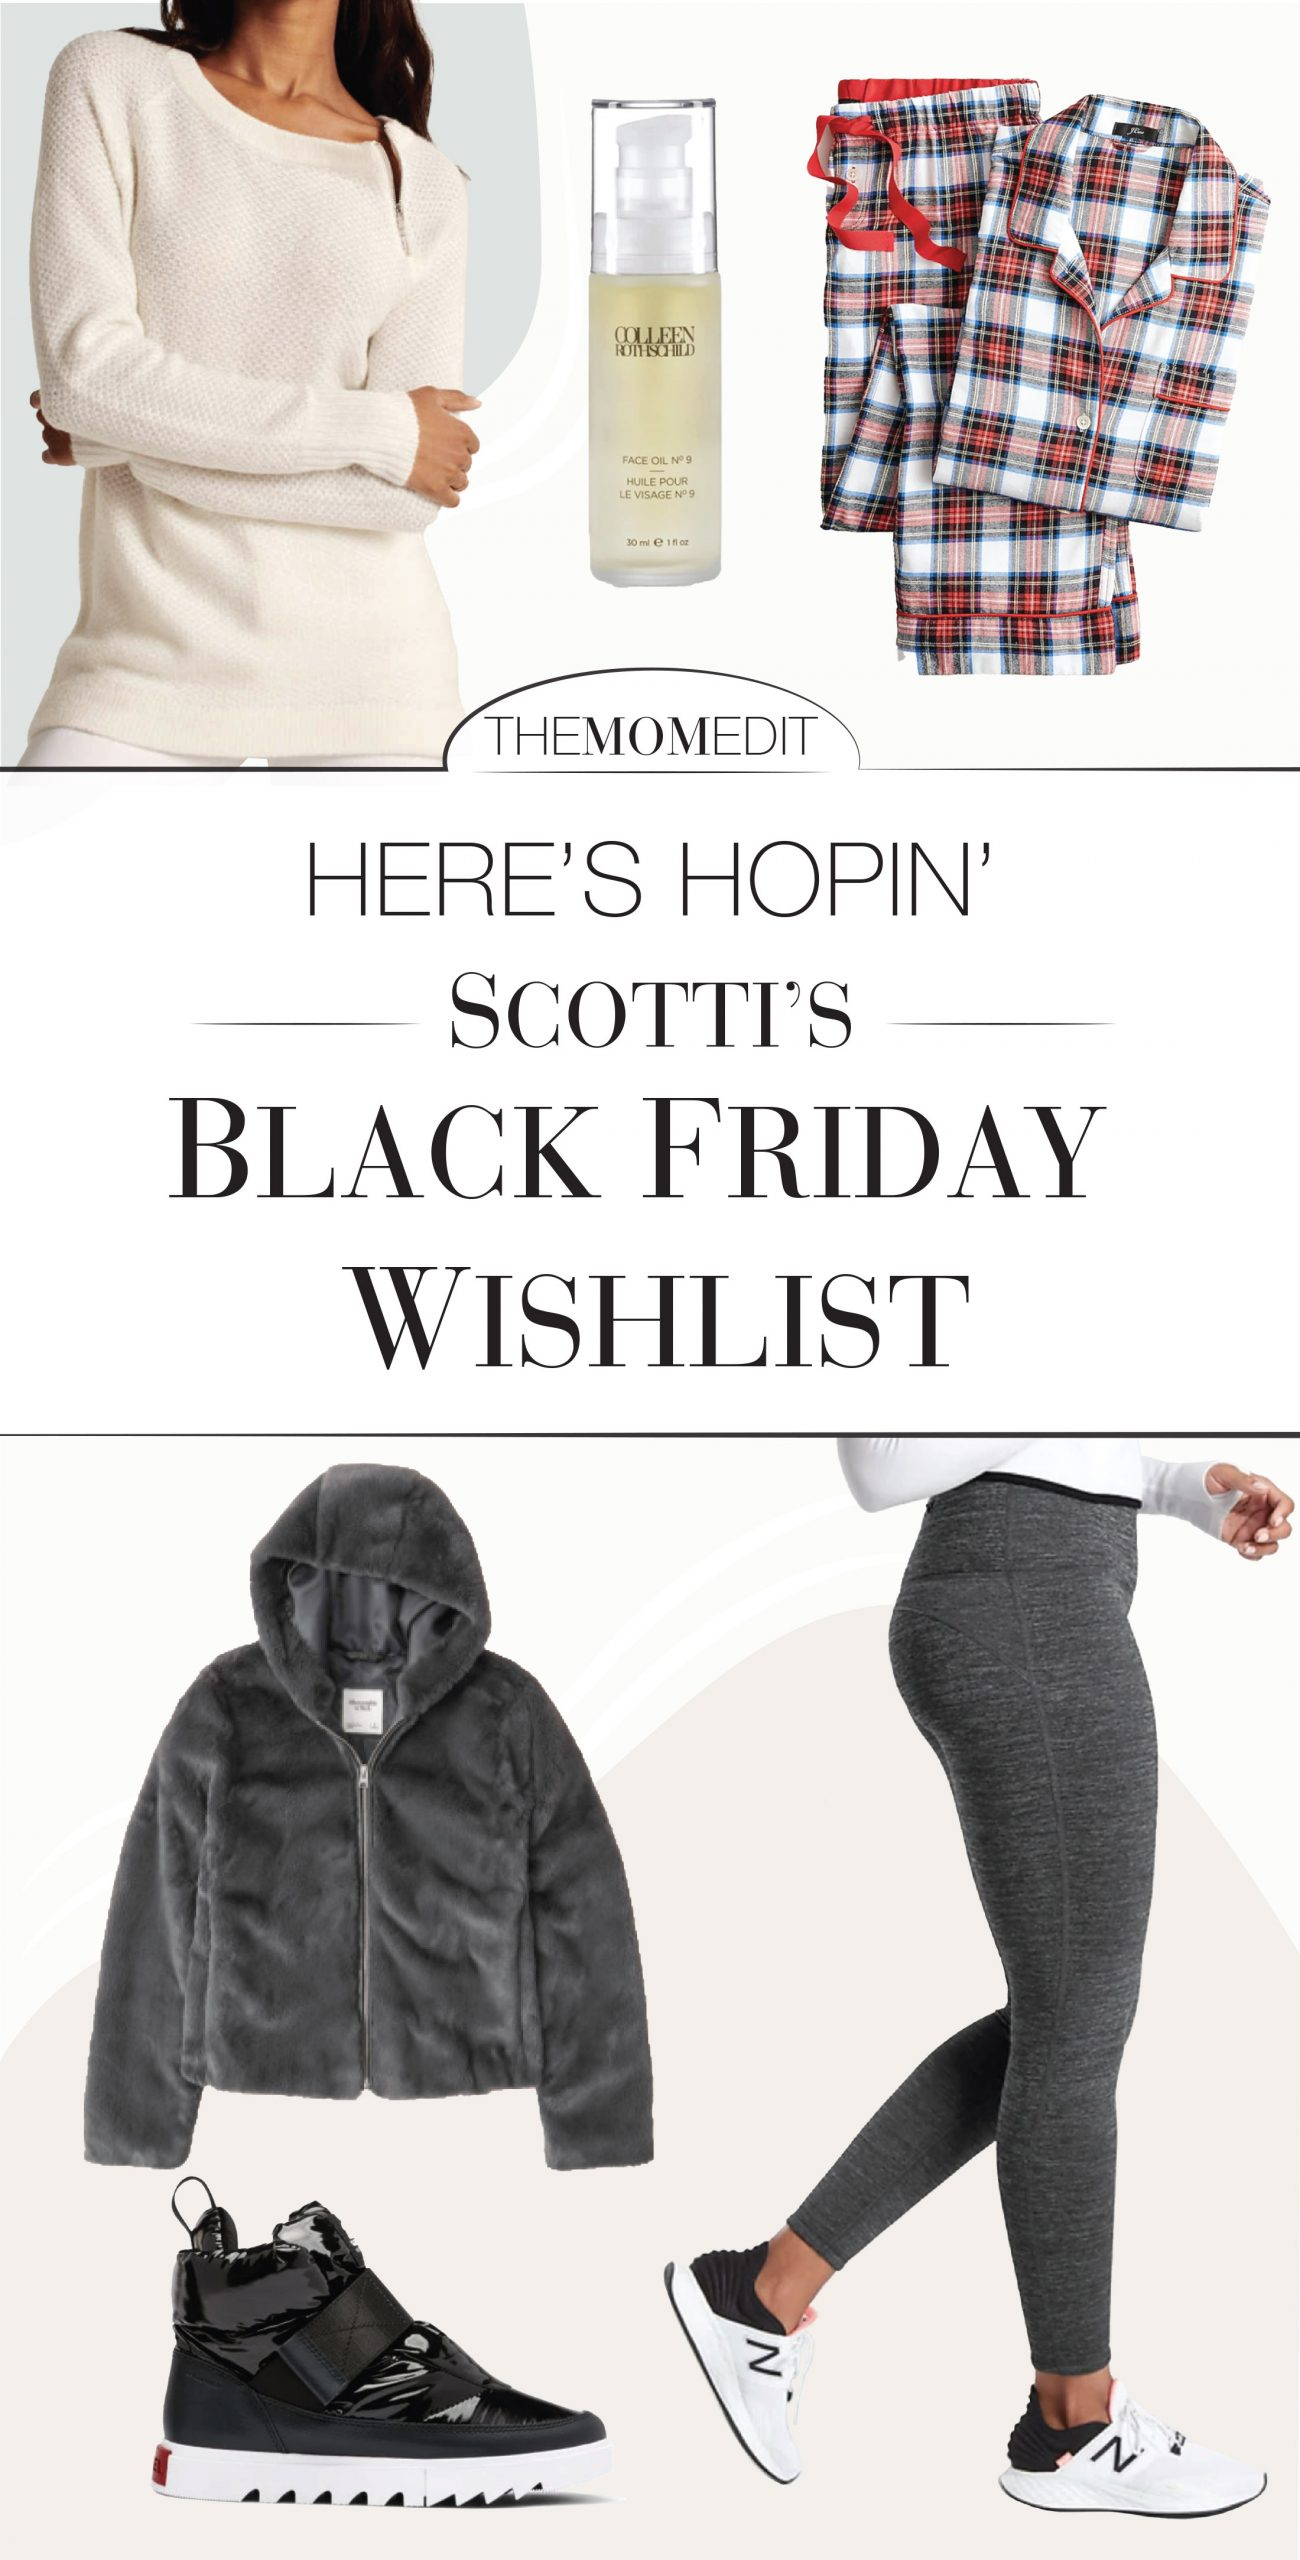 The best women's gifts? Will be on sale for Black Friday. We're hoping for sequins & luxe loungewear from Anthro, Abercrombie & J.Crew. #addtocart